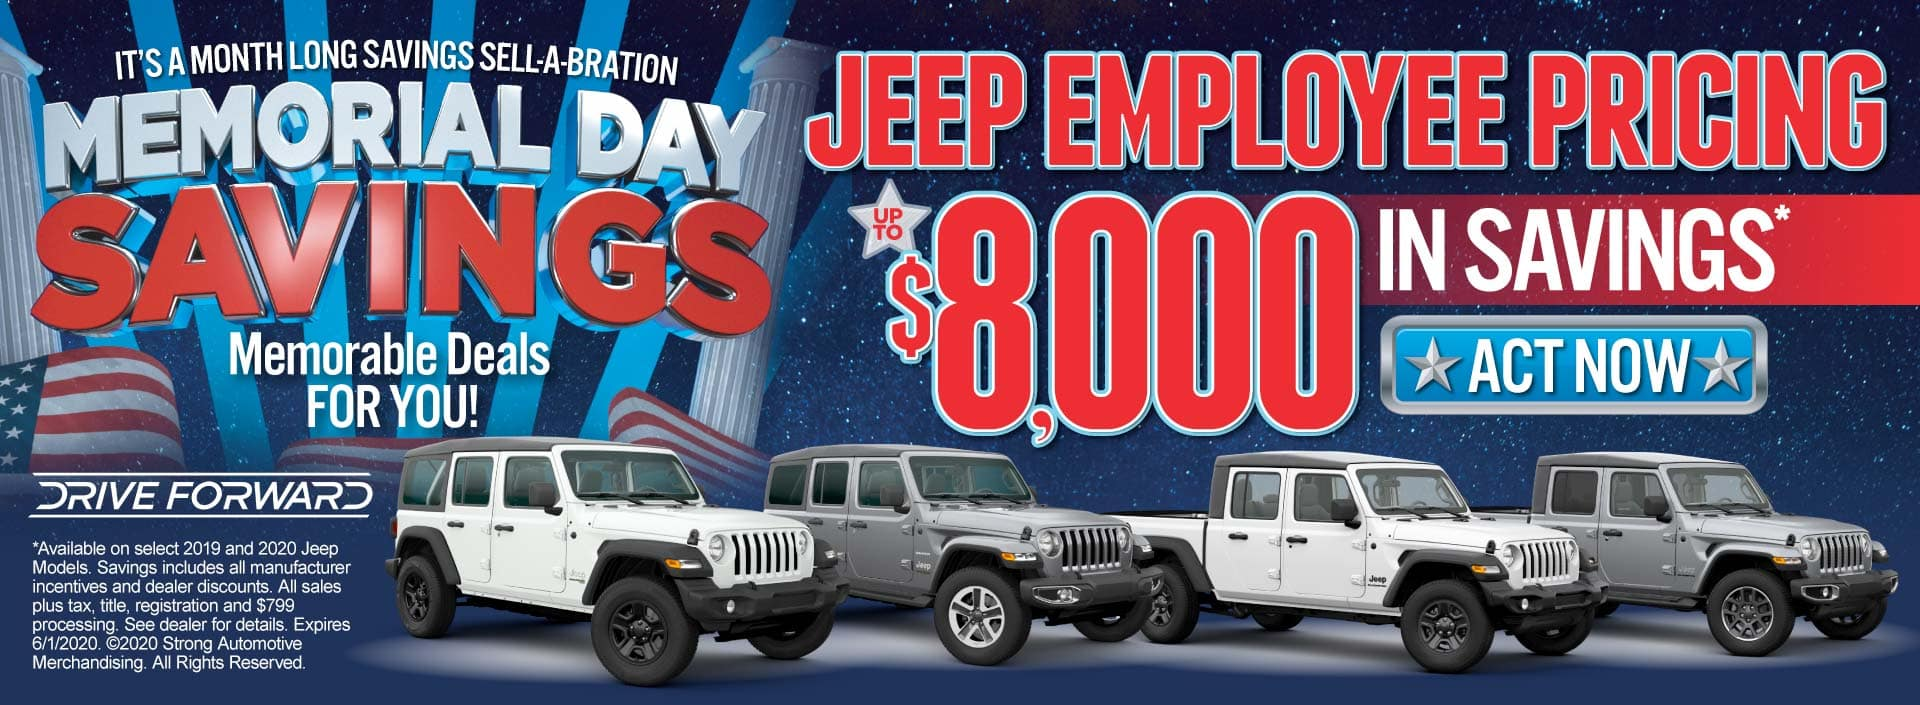 Jeep Employee Pricing up to $8000 in savings. ACT NOW